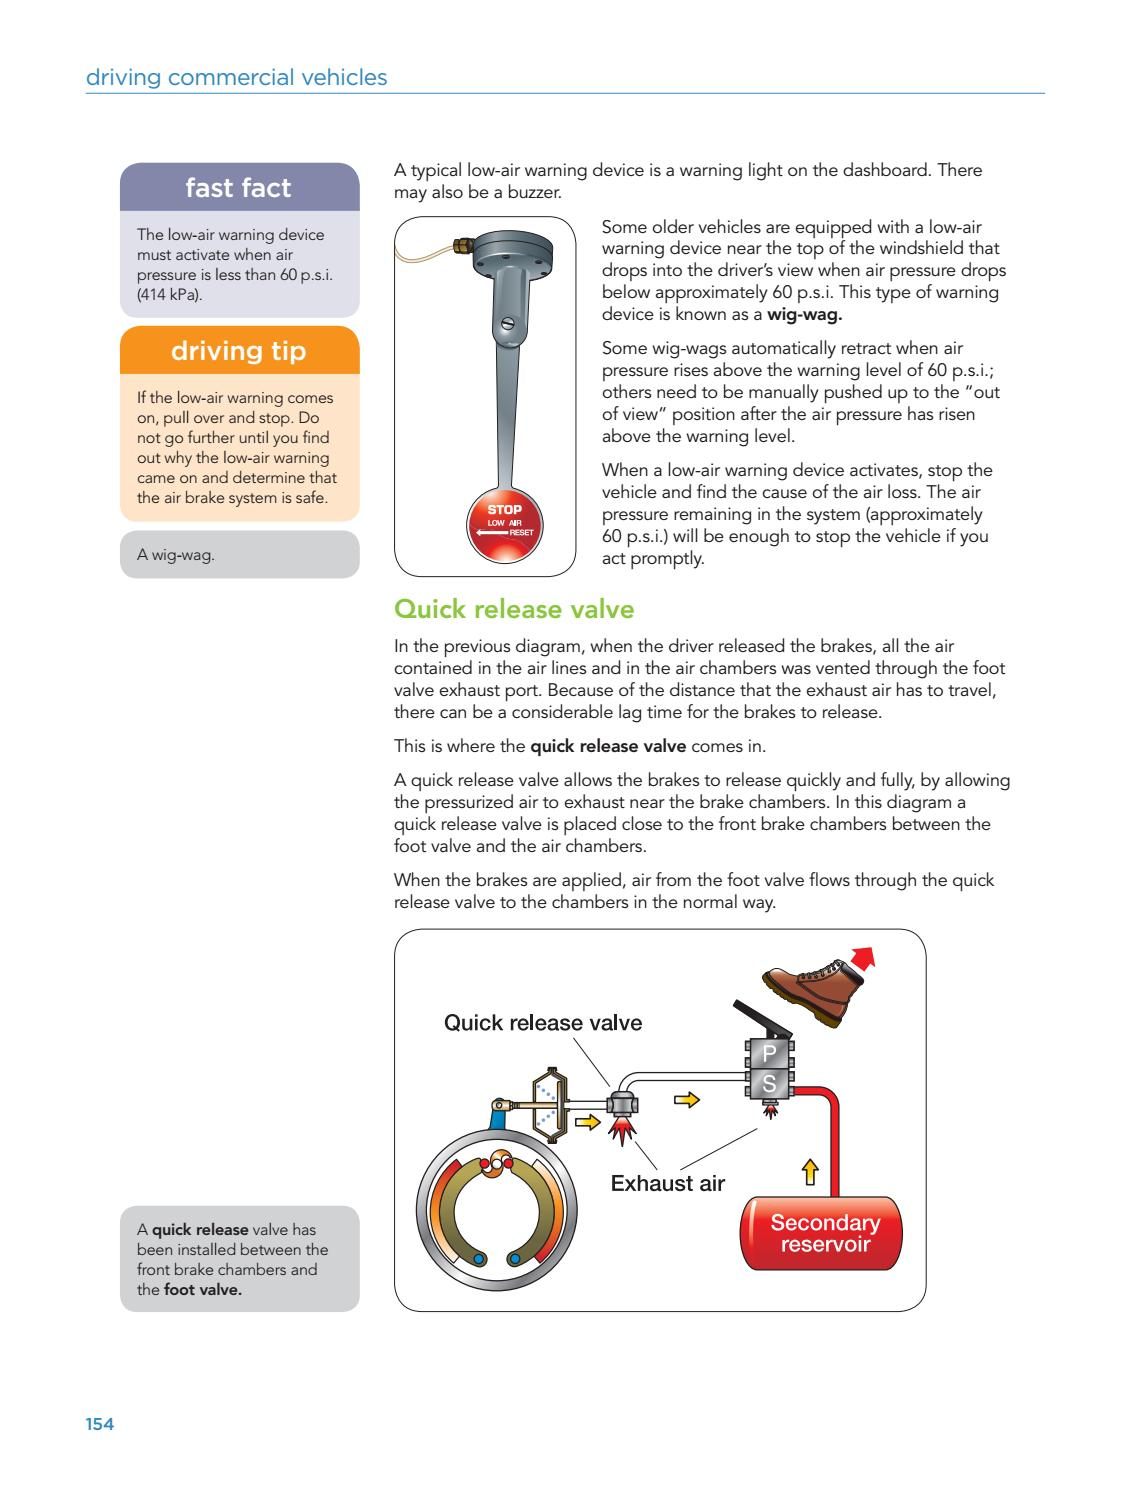 Air Brake Foot Valve Diagram Driving Commercial Vehicles Insurance Corporation Of Bc Issuu